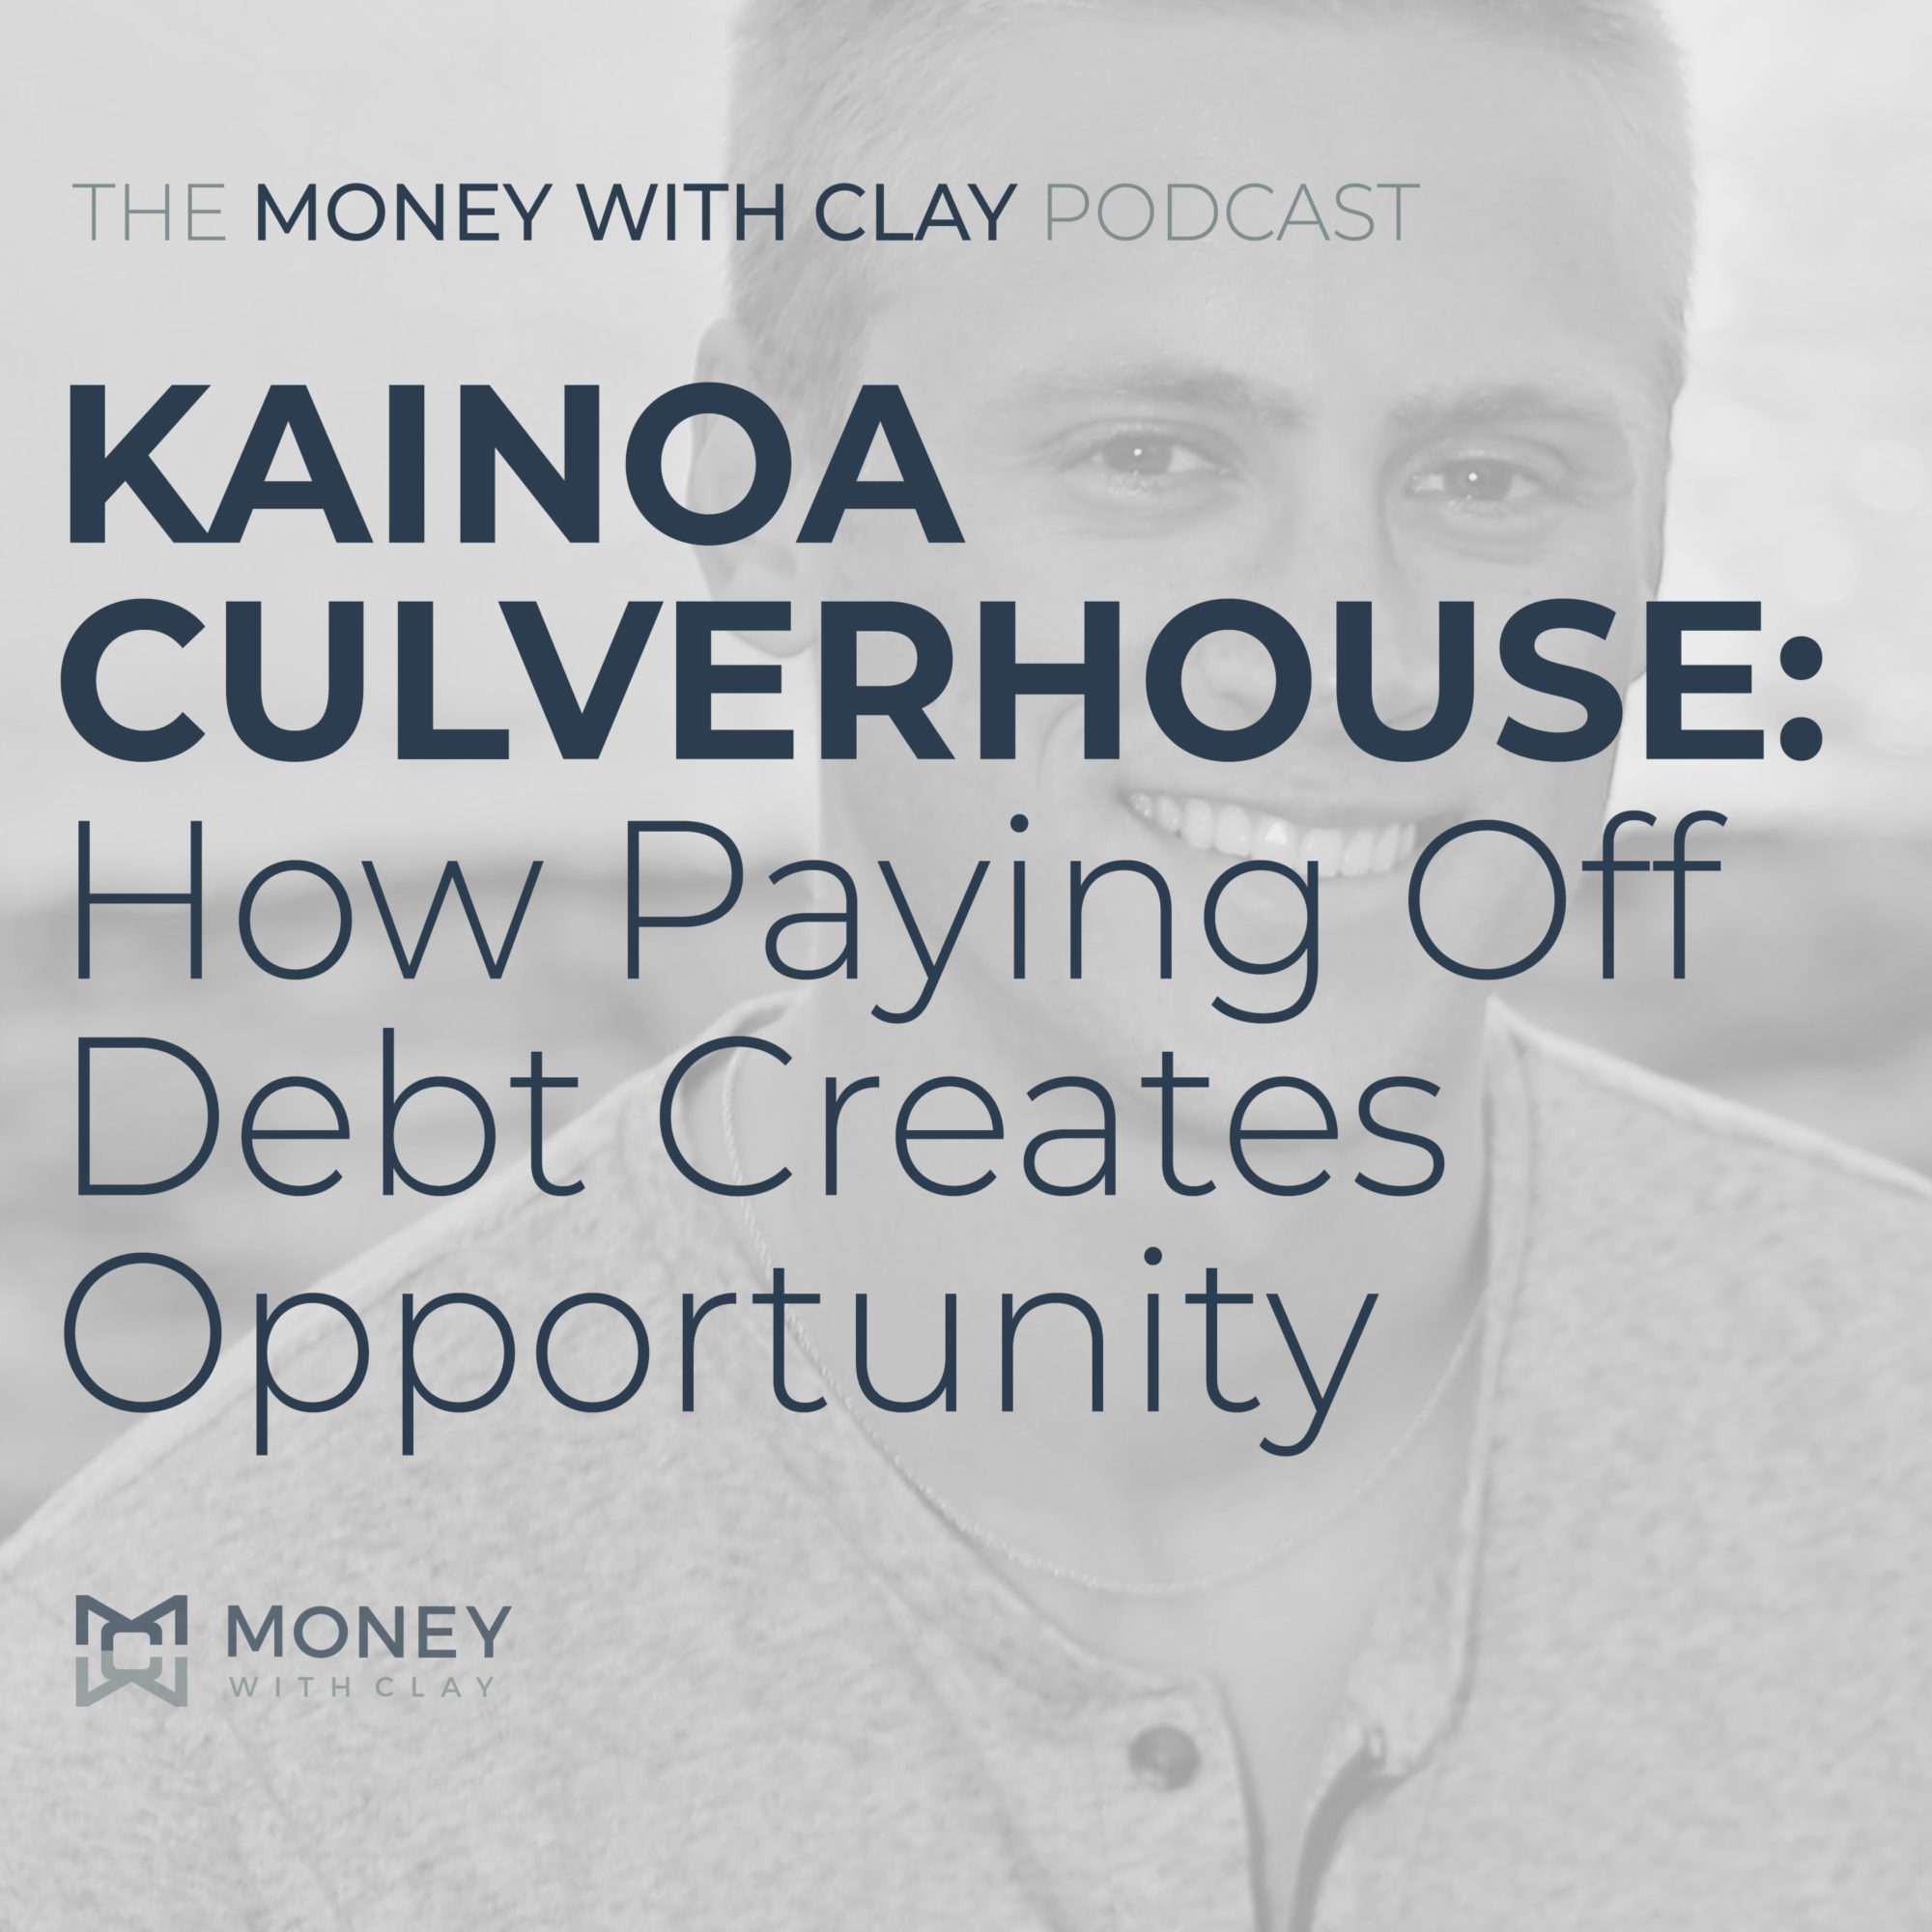 Kainoa Culverhouse has learned and applied my methods of money and is now debt free. He has big plans for himself in health, real estate and the stock market… all of which are more than possible and realistic due to the zero debt in his life. He's a young guy with a bright future.